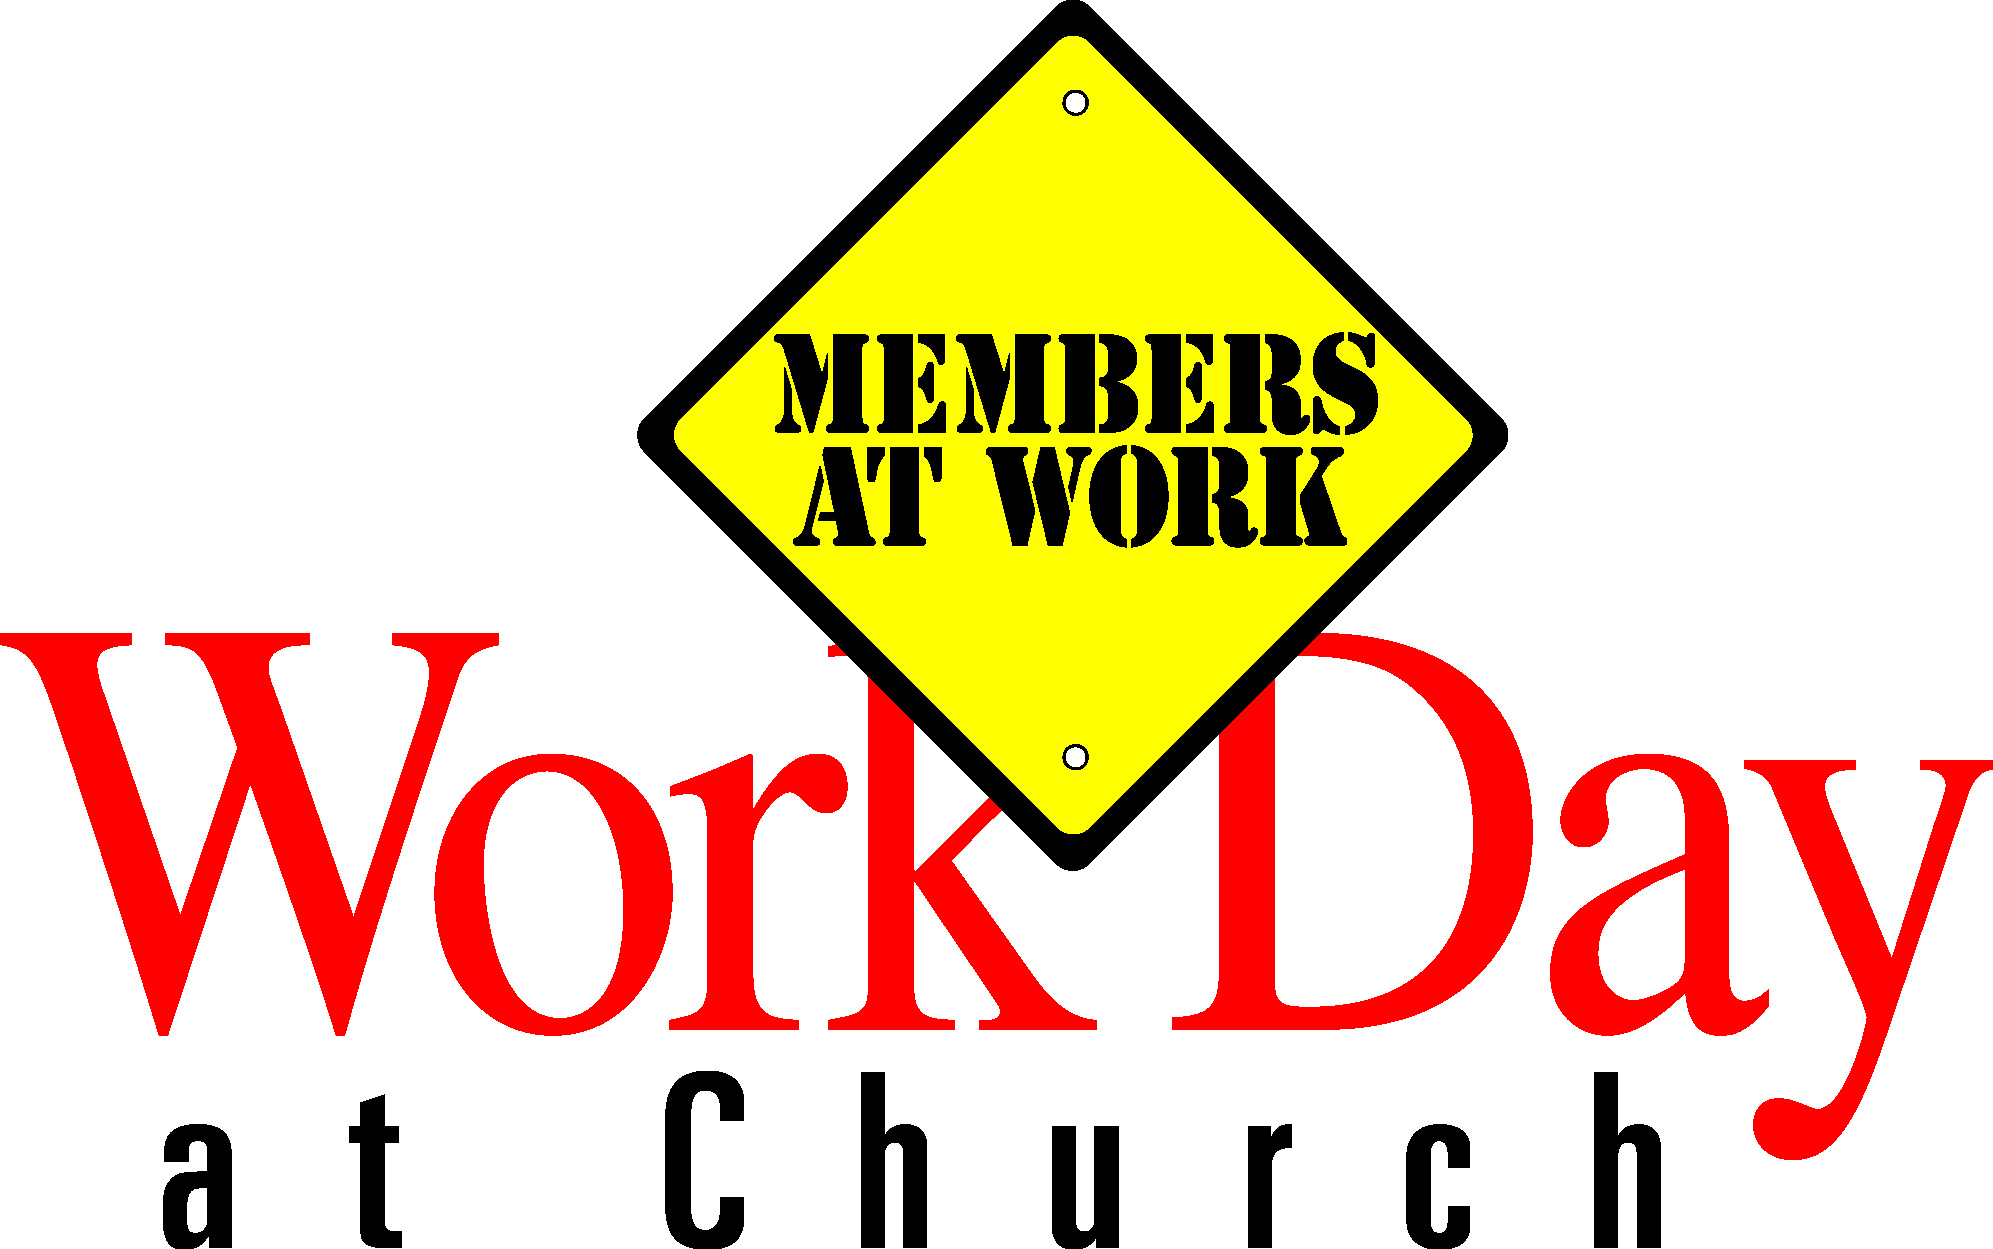 Free clipart images for church willing workers svg freeuse download Free Church Day Cliparts, Download Free Clip Art, Free Clip Art on ... svg freeuse download